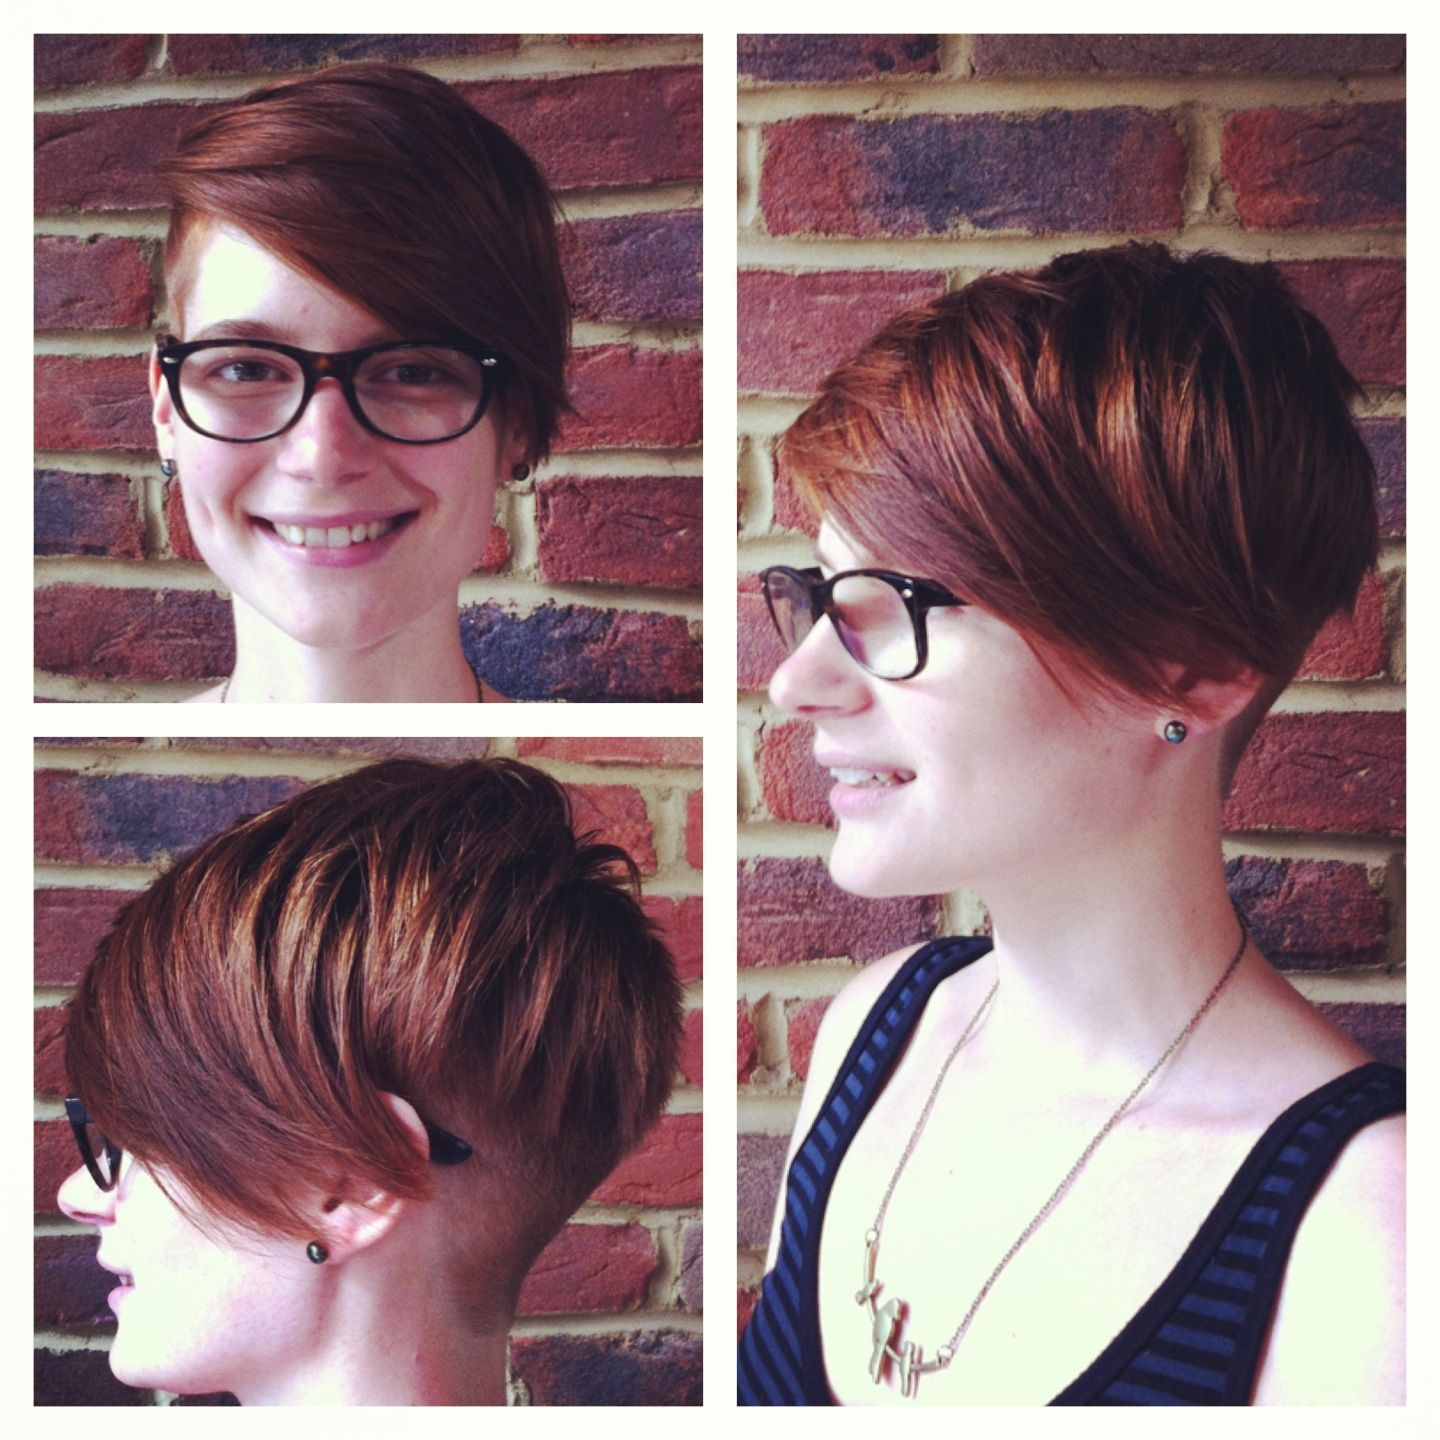 ladies haircut. disconnected and asymmetric layering on top